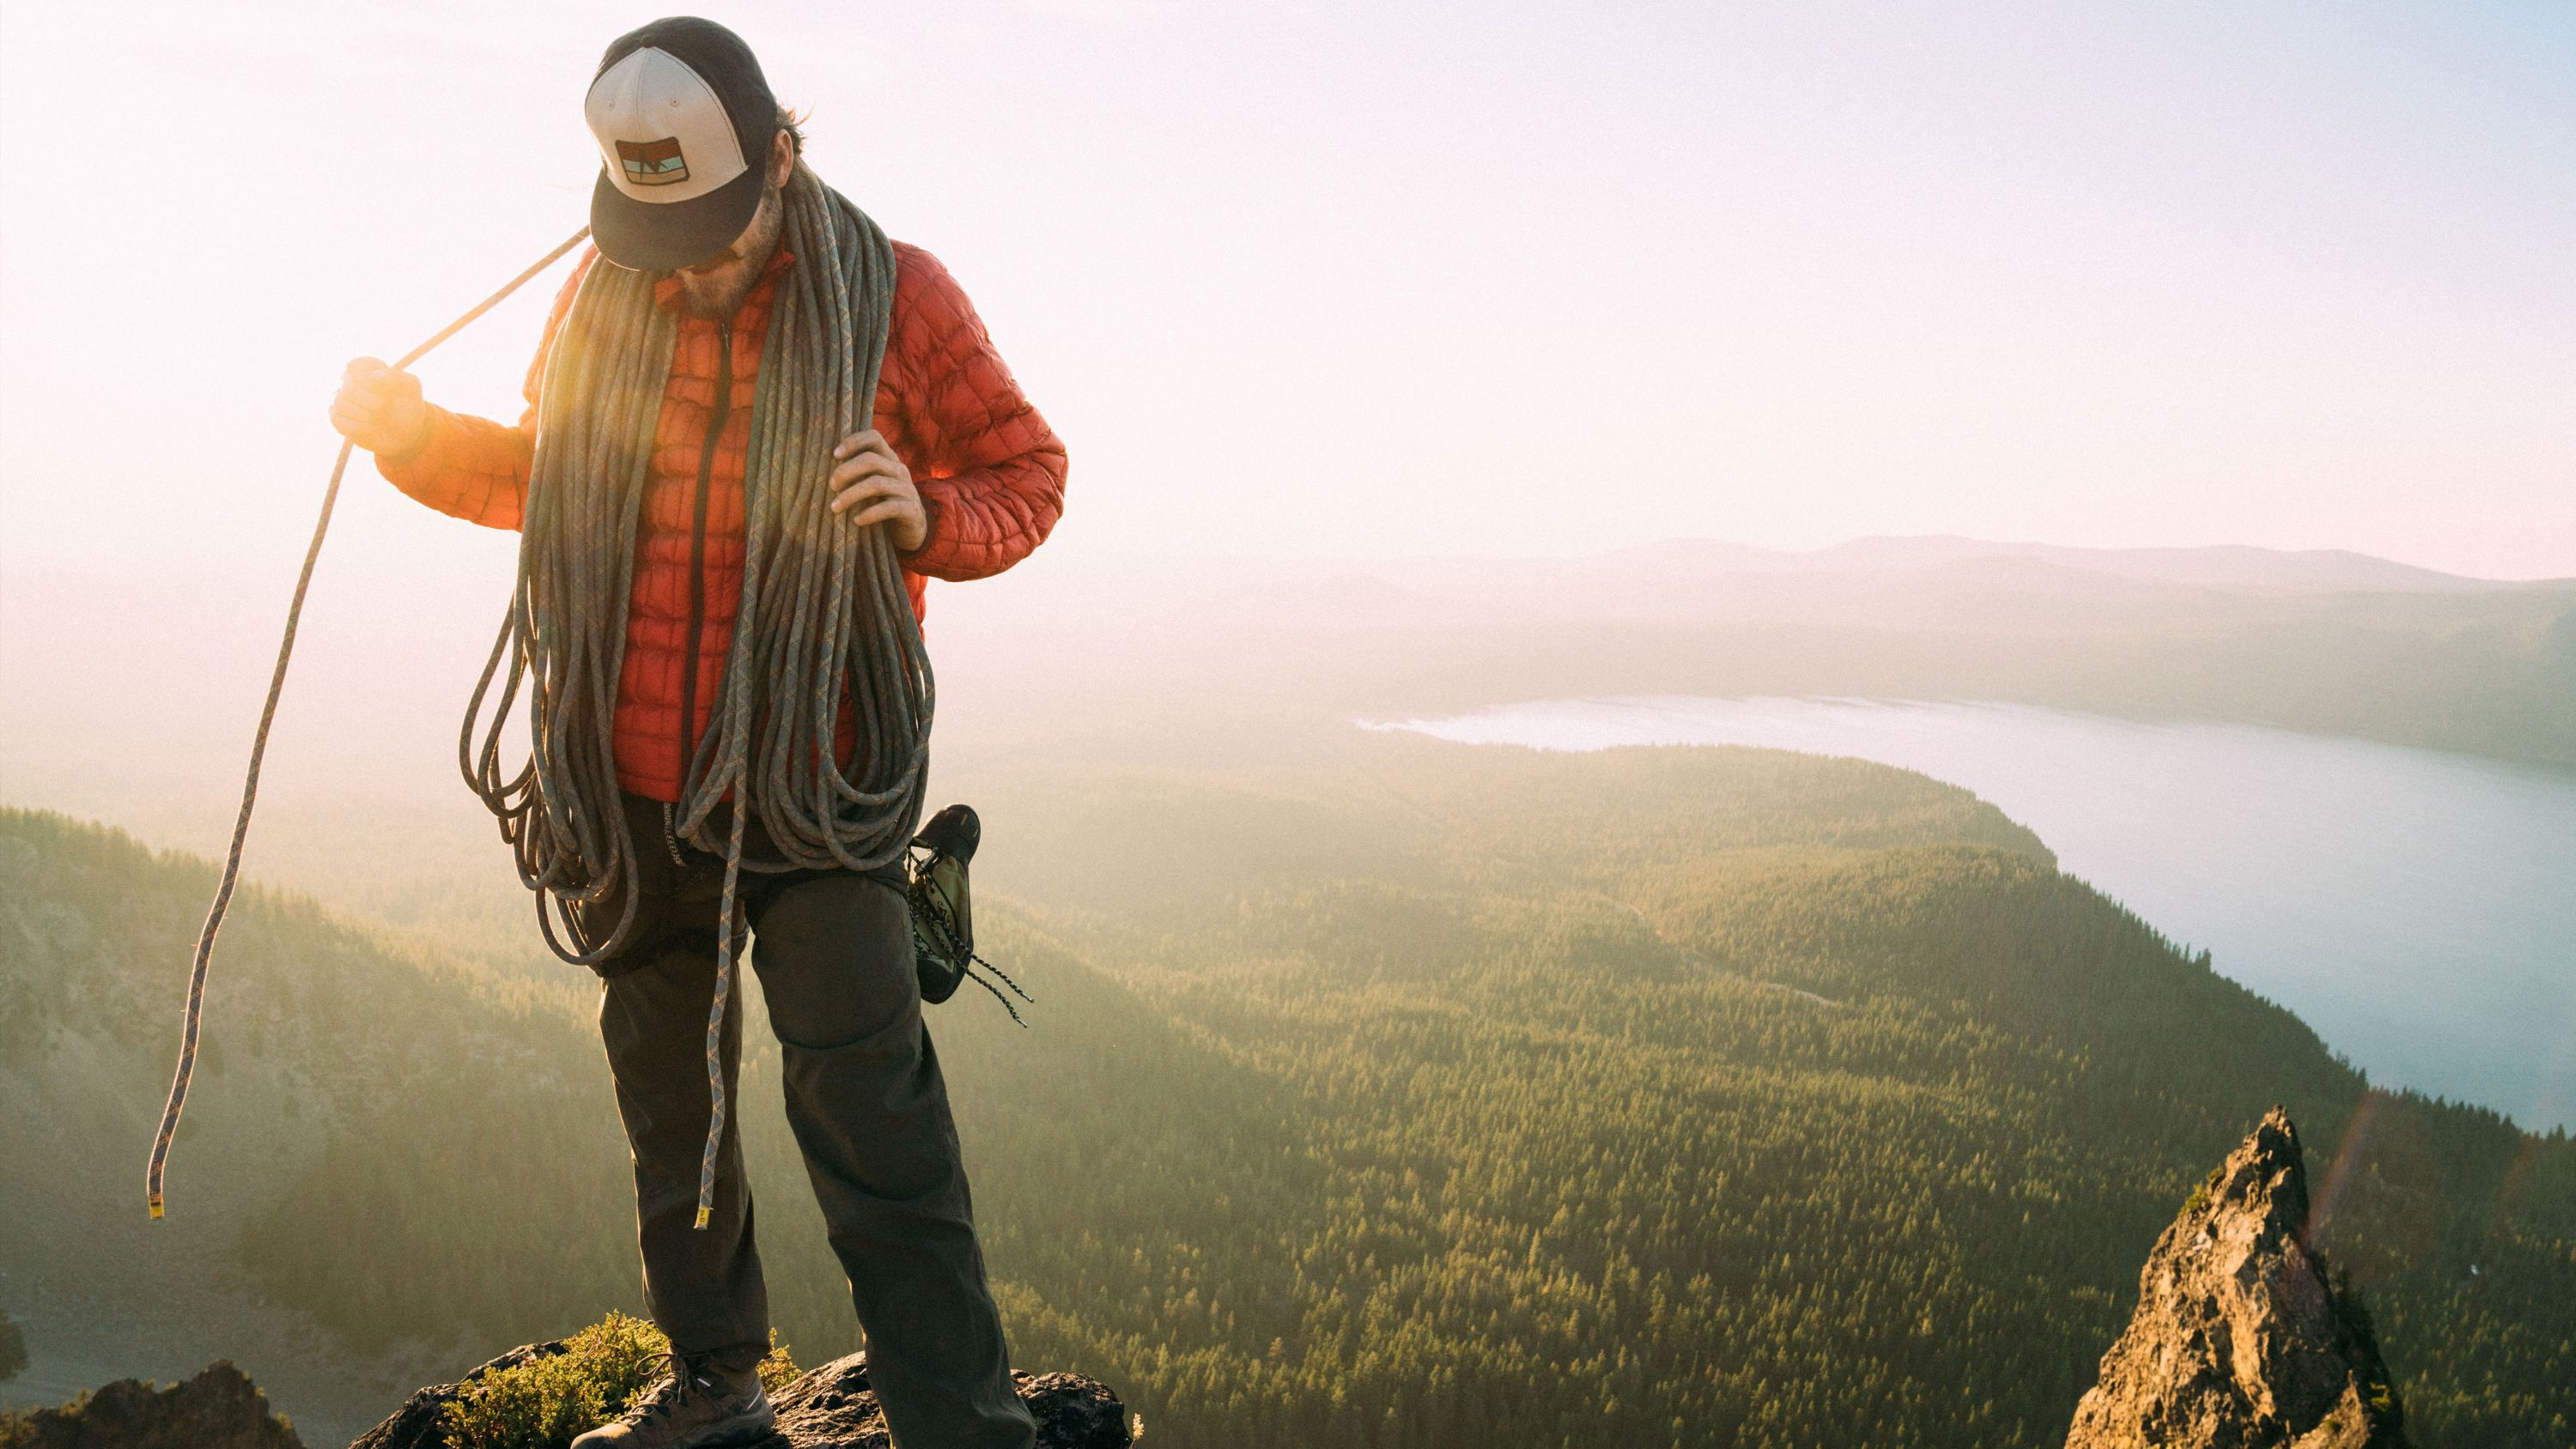 assorted outdoor apparel for extreme conditions day & night